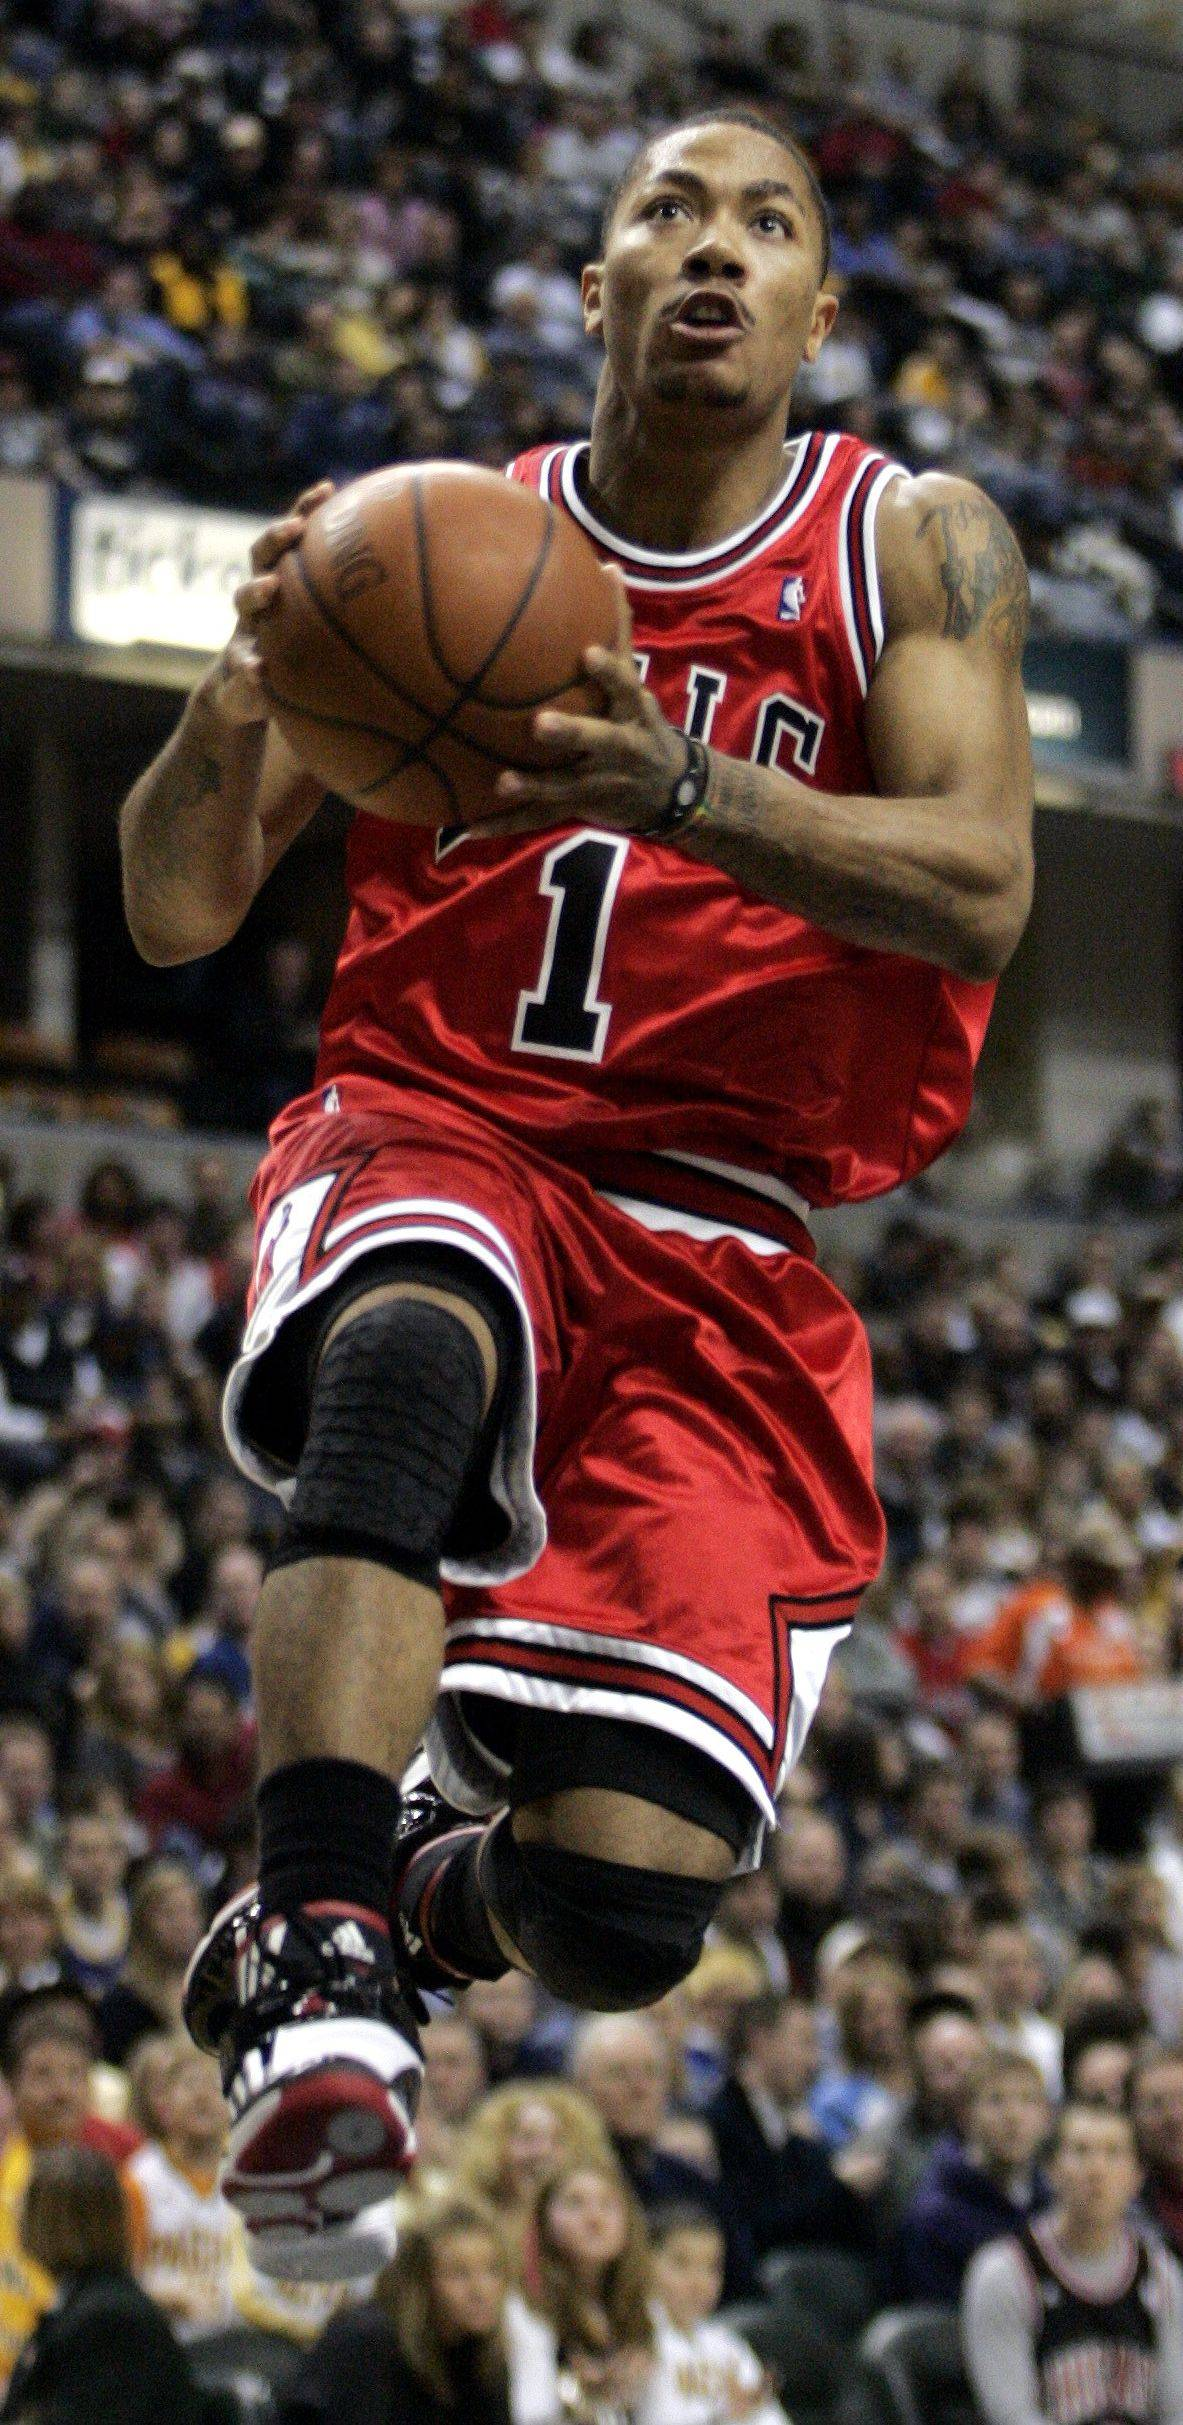 Chicago Bulls' Derrick Rose drives toward the basket during the first half of an NBA basketball game against the Indiana Pacers in Indianapolis, Saturday, Feb. 27, 2010. Rose scored 27 points but Indiana won 100-90.